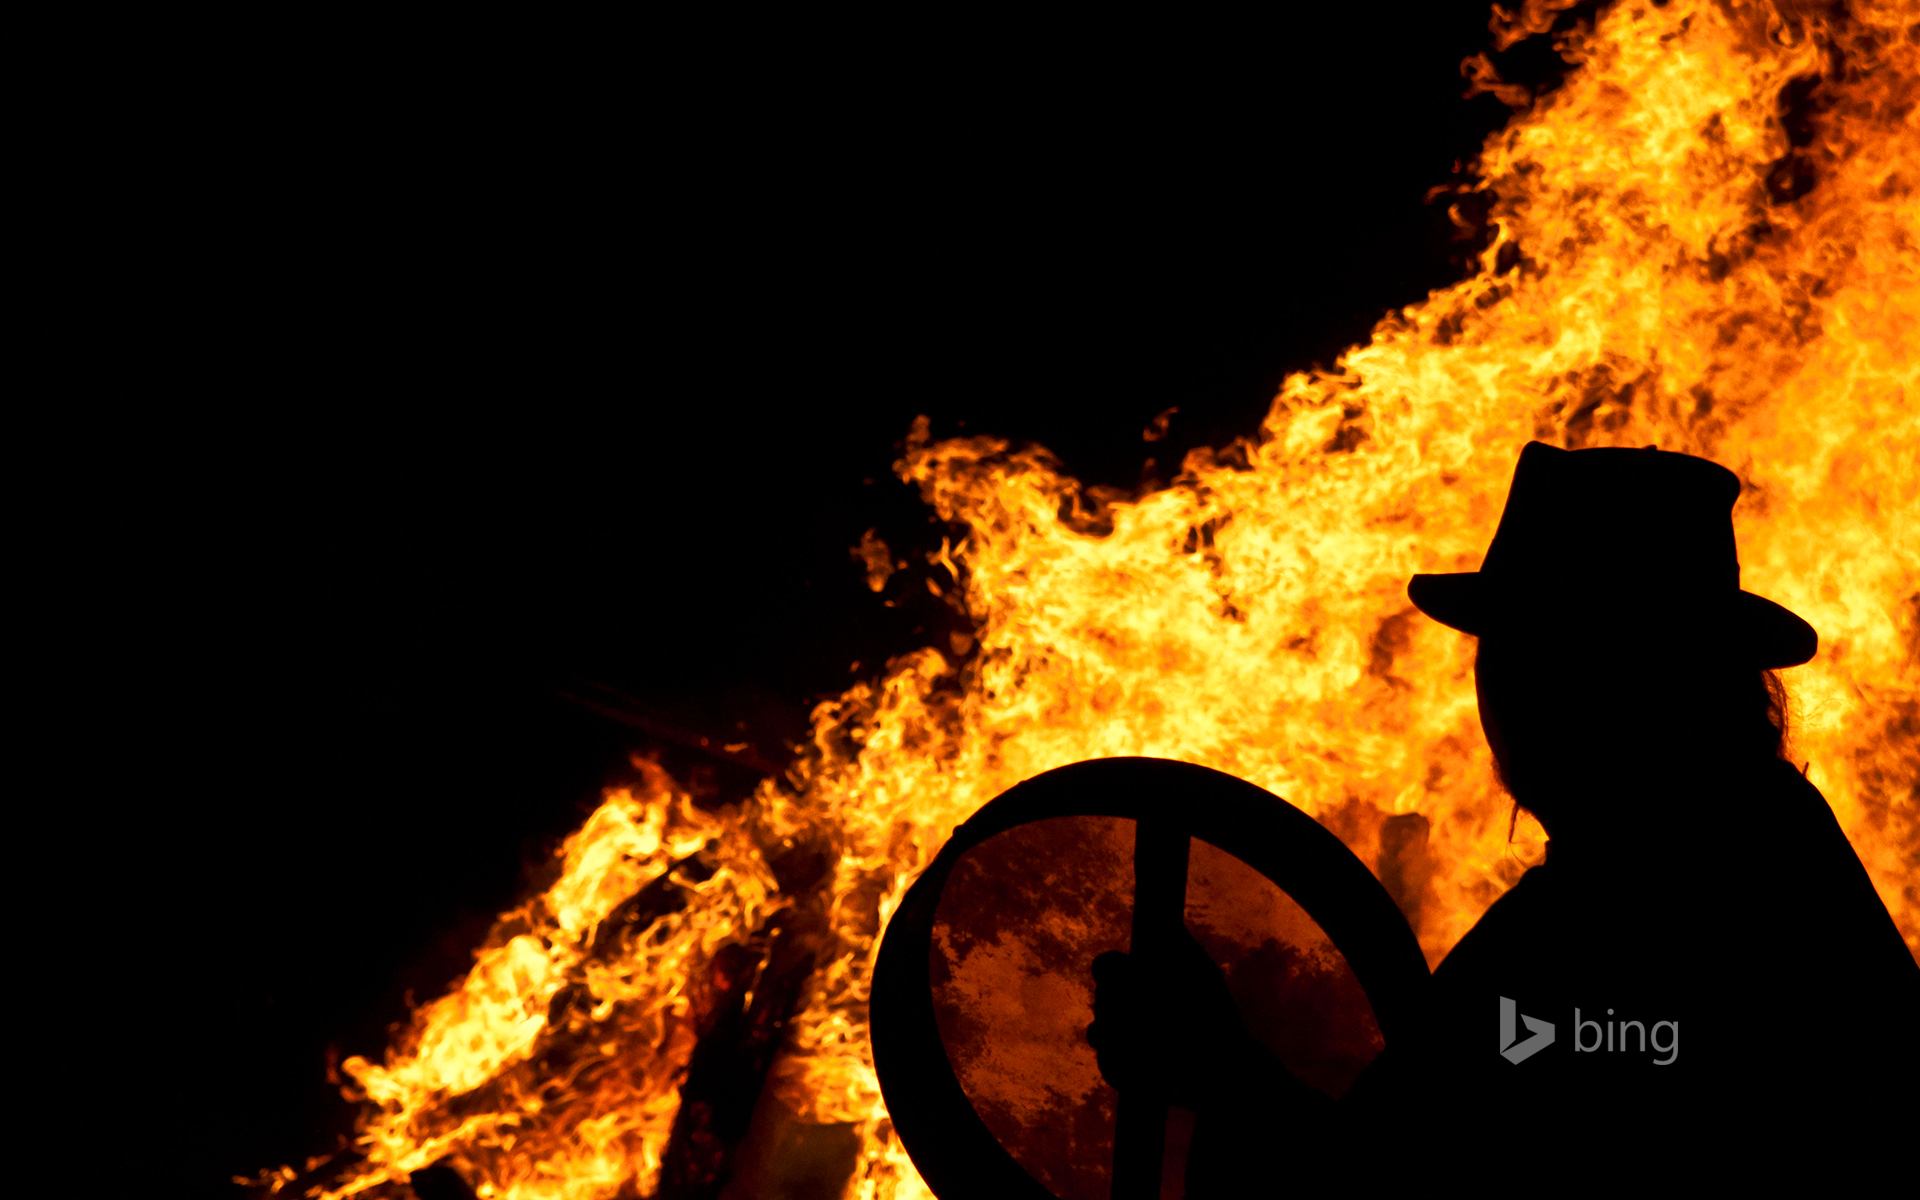 Drummer with a bodhran at a pagan Beltane fire ceremony